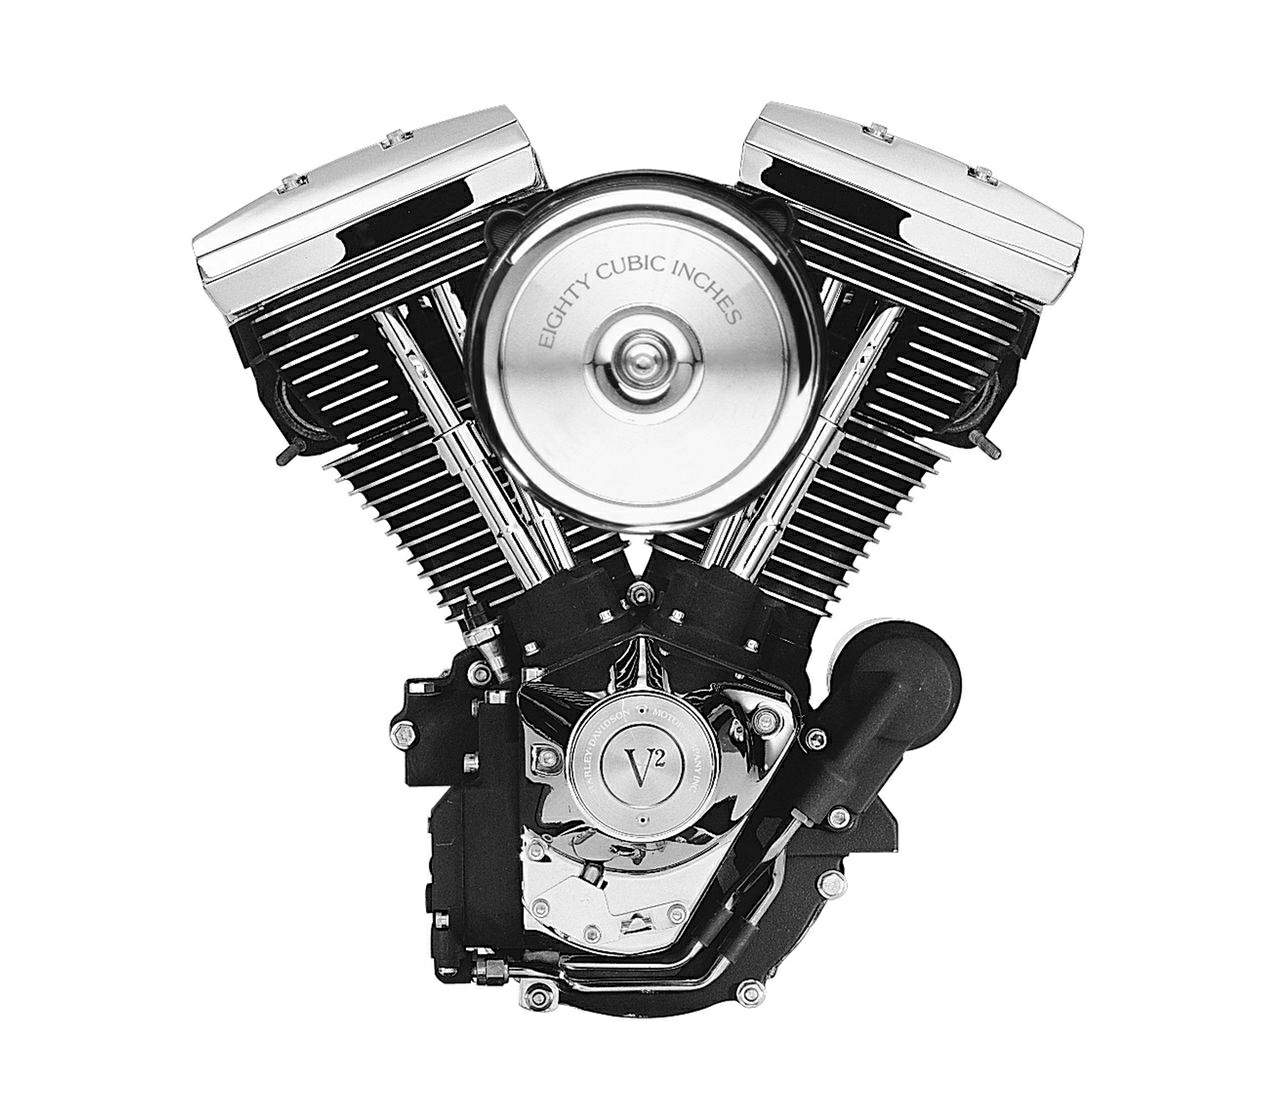 hight resolution of harley davidson flstc 1340 heritage softail classic rh motorcyclespecs co za harley evo engine diagram harley